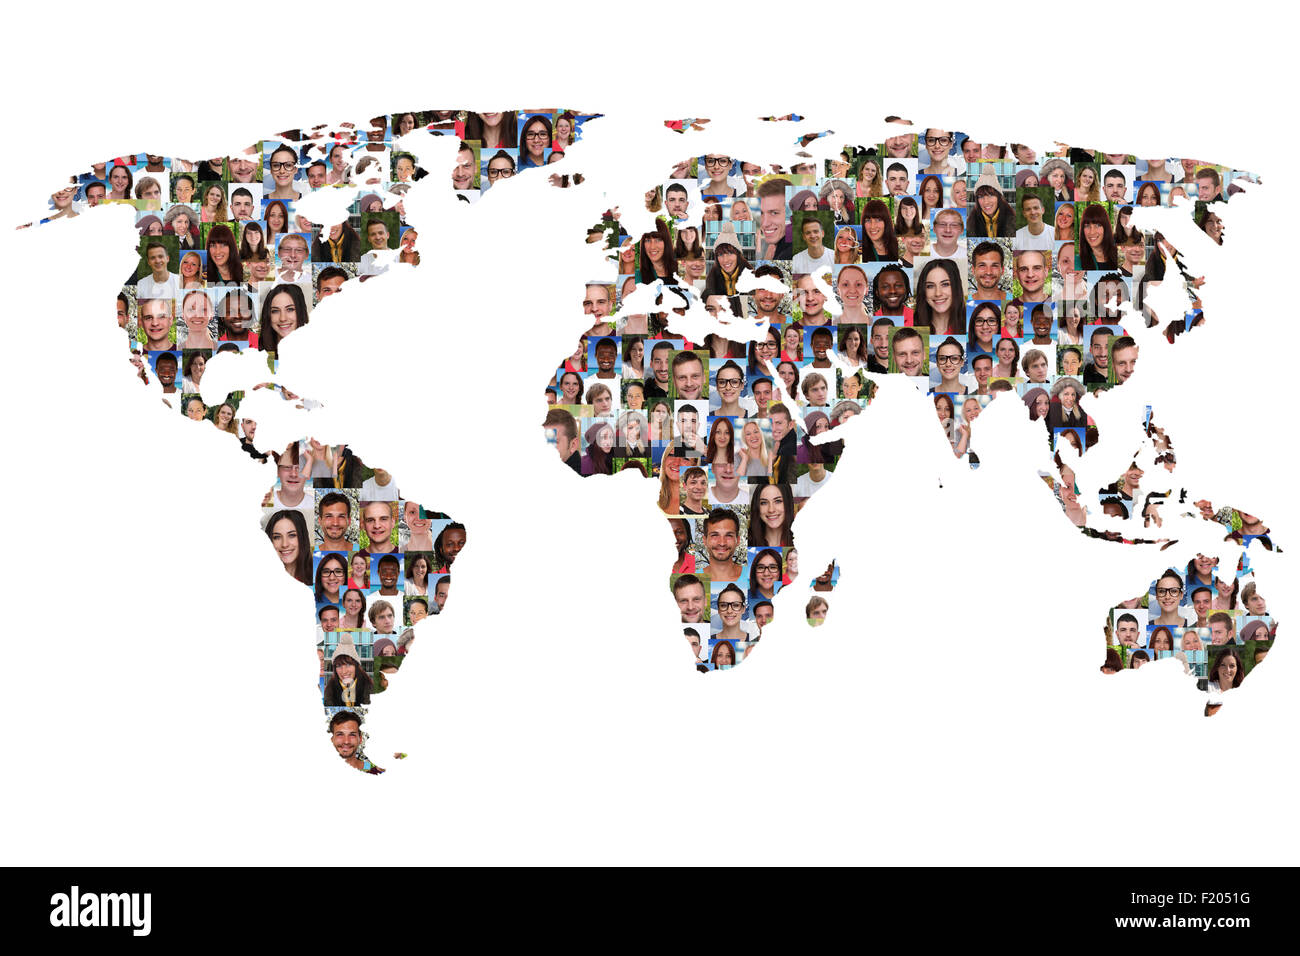 World map diversity stock photos world map diversity stock world map earth multicultural group of people integration diversity isolated stock image gumiabroncs Gallery